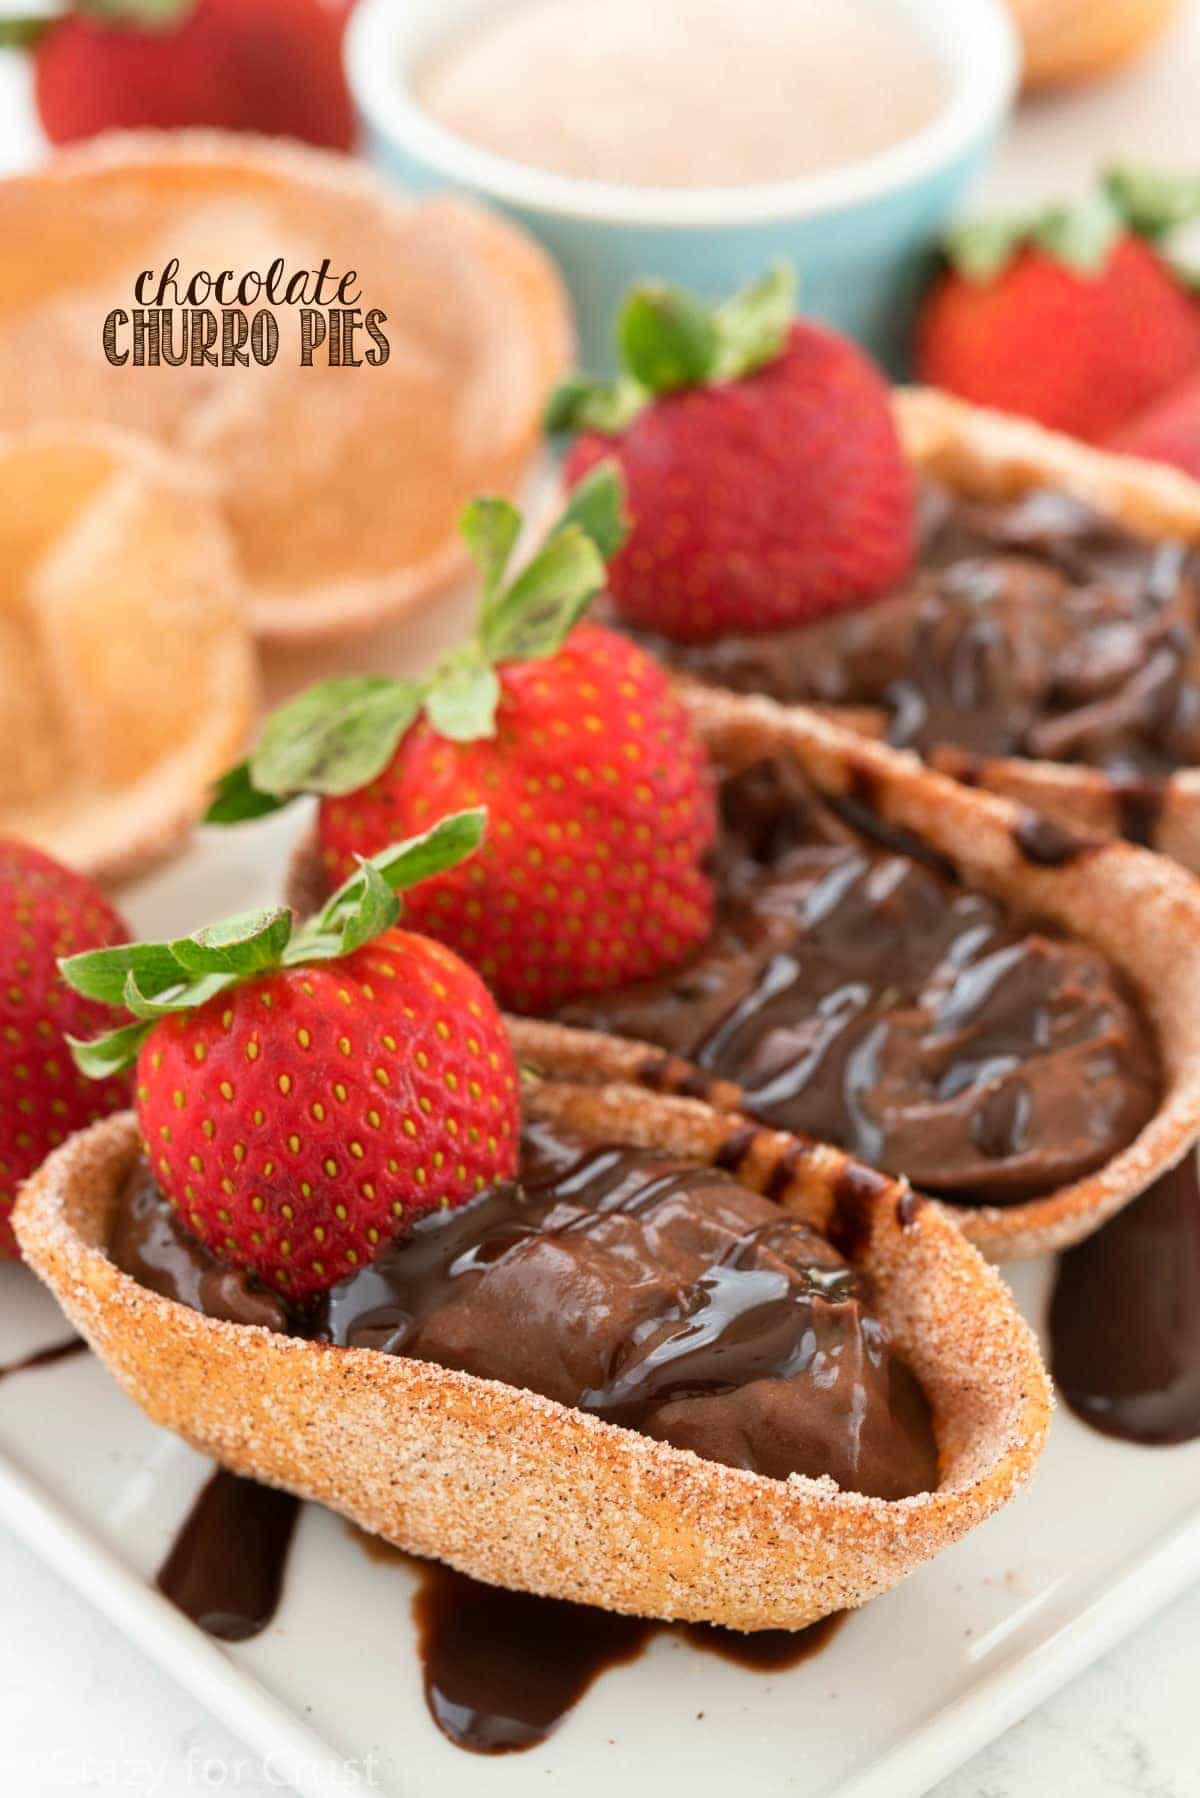 Chocolate Churro Pies